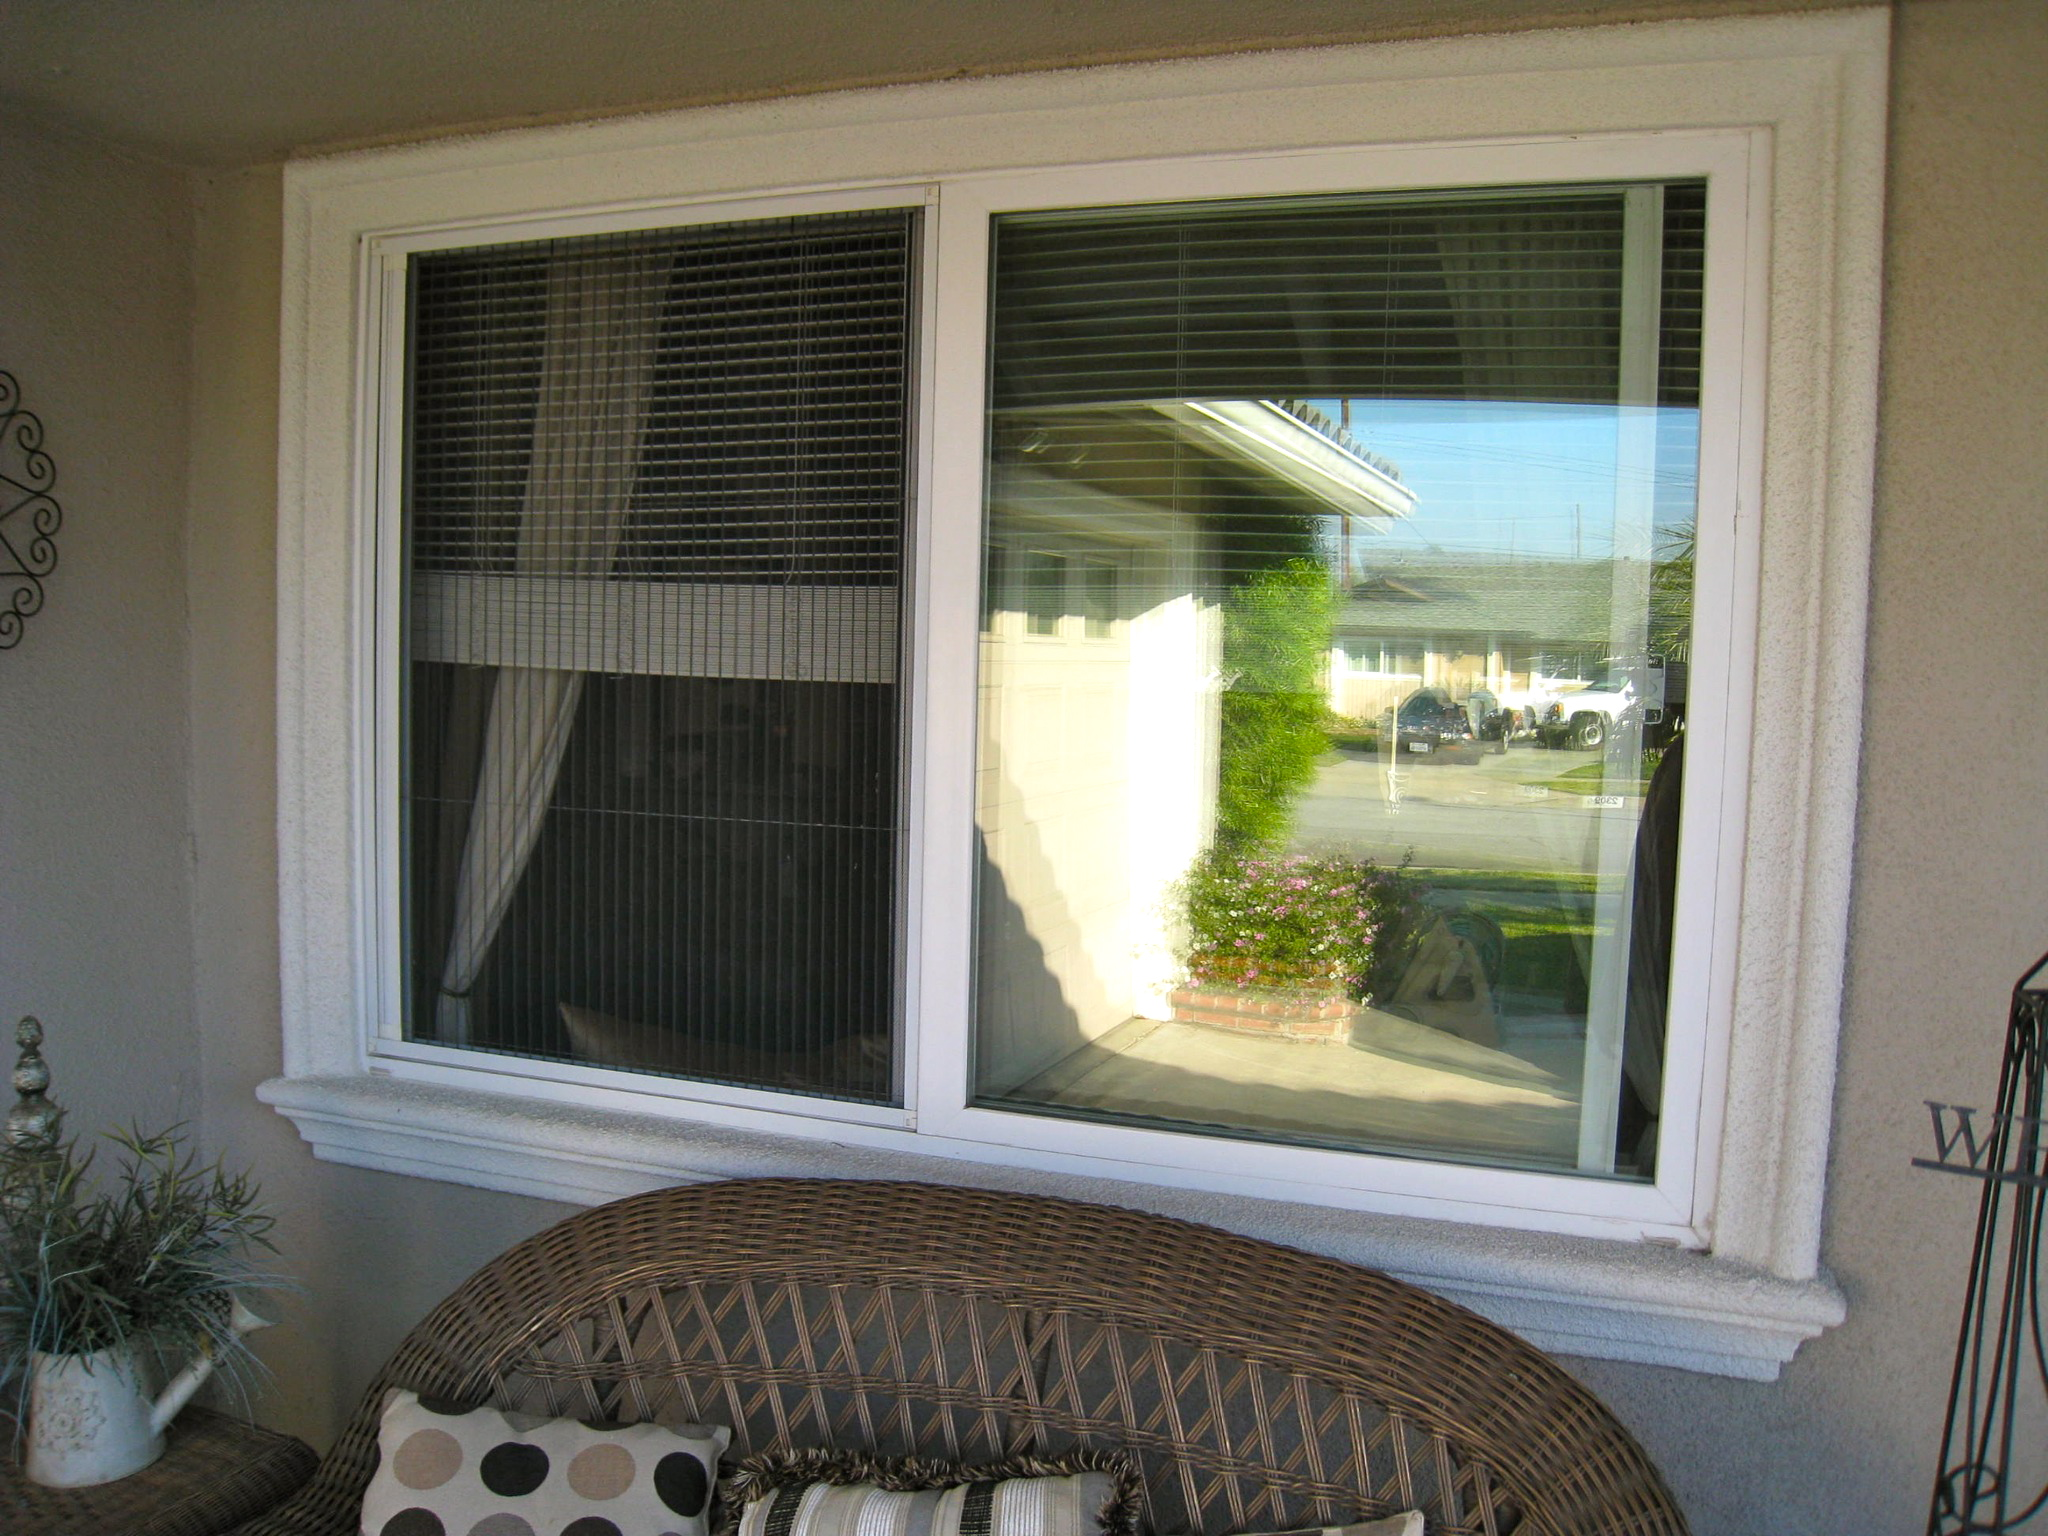 Plisse window retractable screens retractable screens for Windows with retractable screens